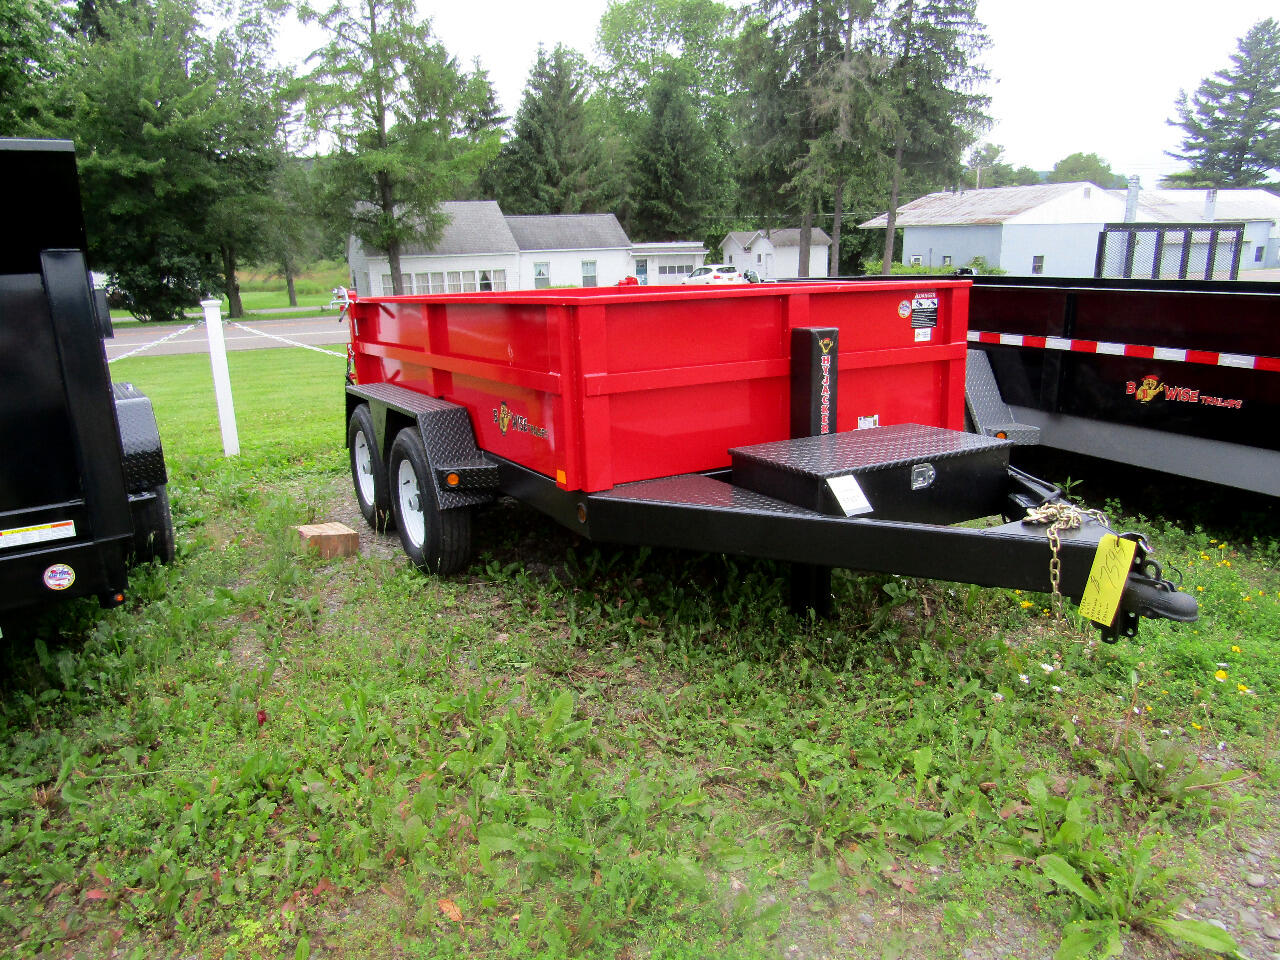 2019 BWise HD Dump Trailer DLP10-10 6X10 WITH HYDRAULIC JACK   10K